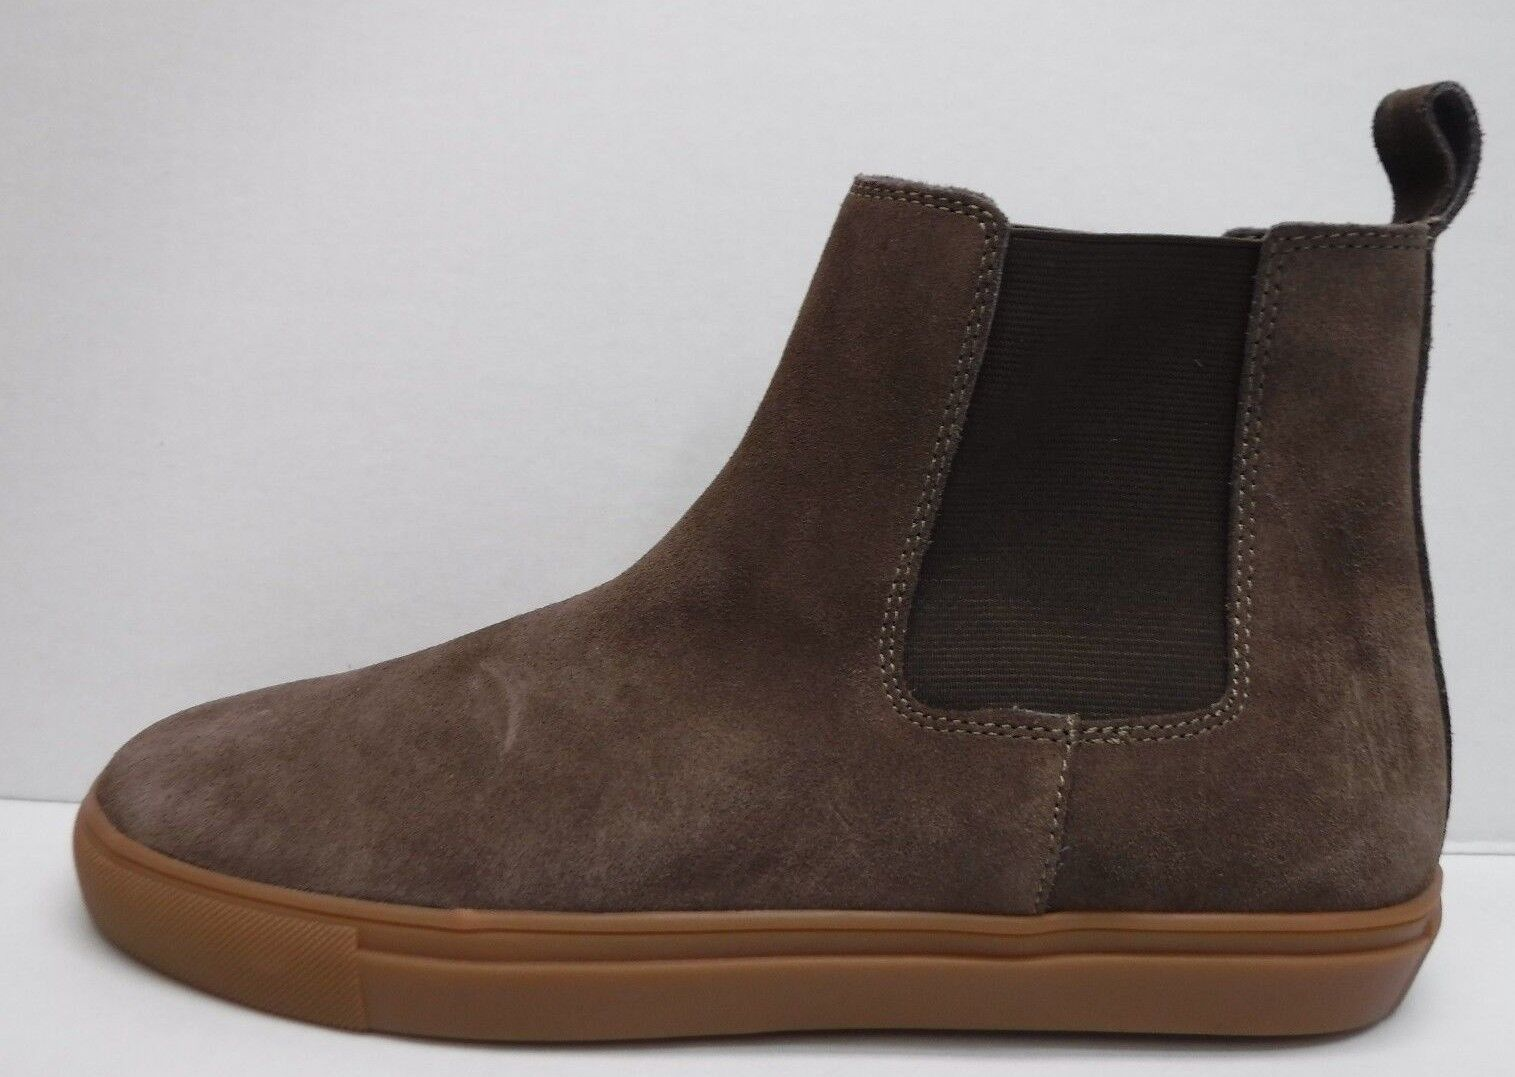 Steve Madden Size 10 Brown Suede Chukka Boots New Mens Shoes